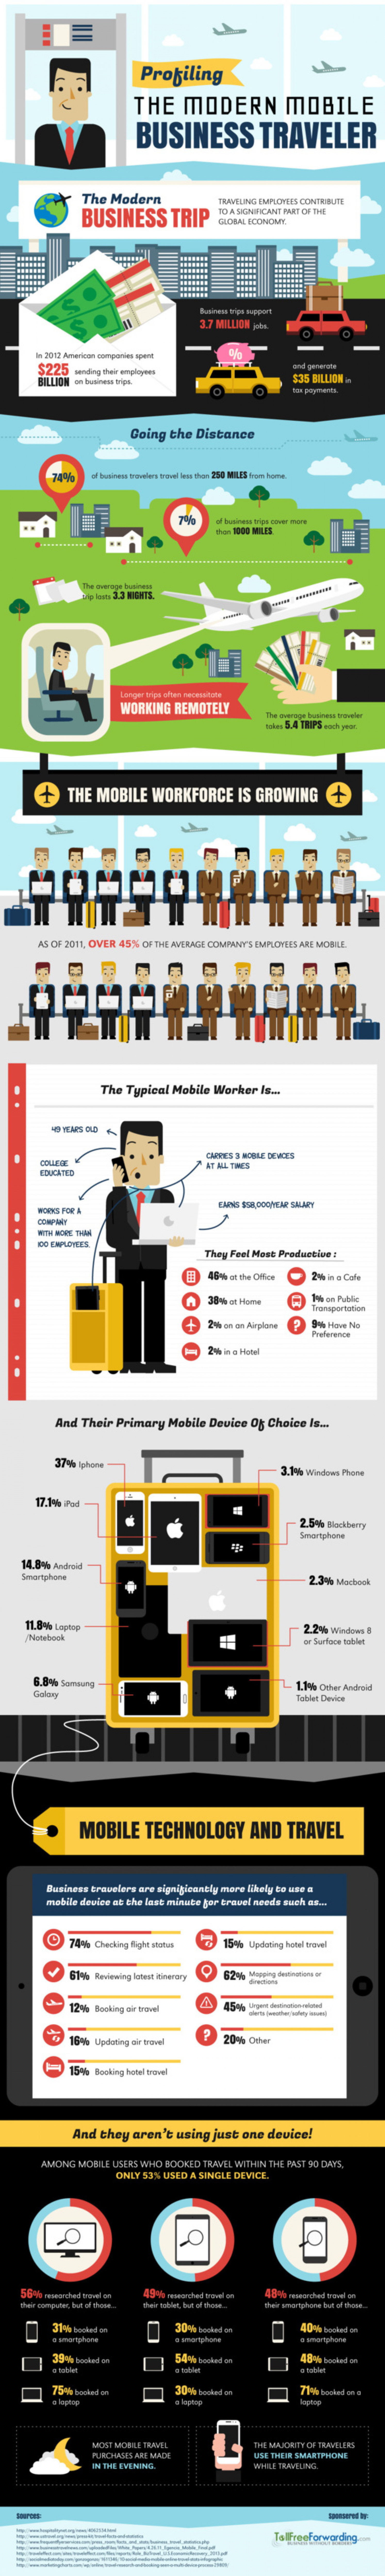 Profiling the Modern Mobile Business Traveler Infographic